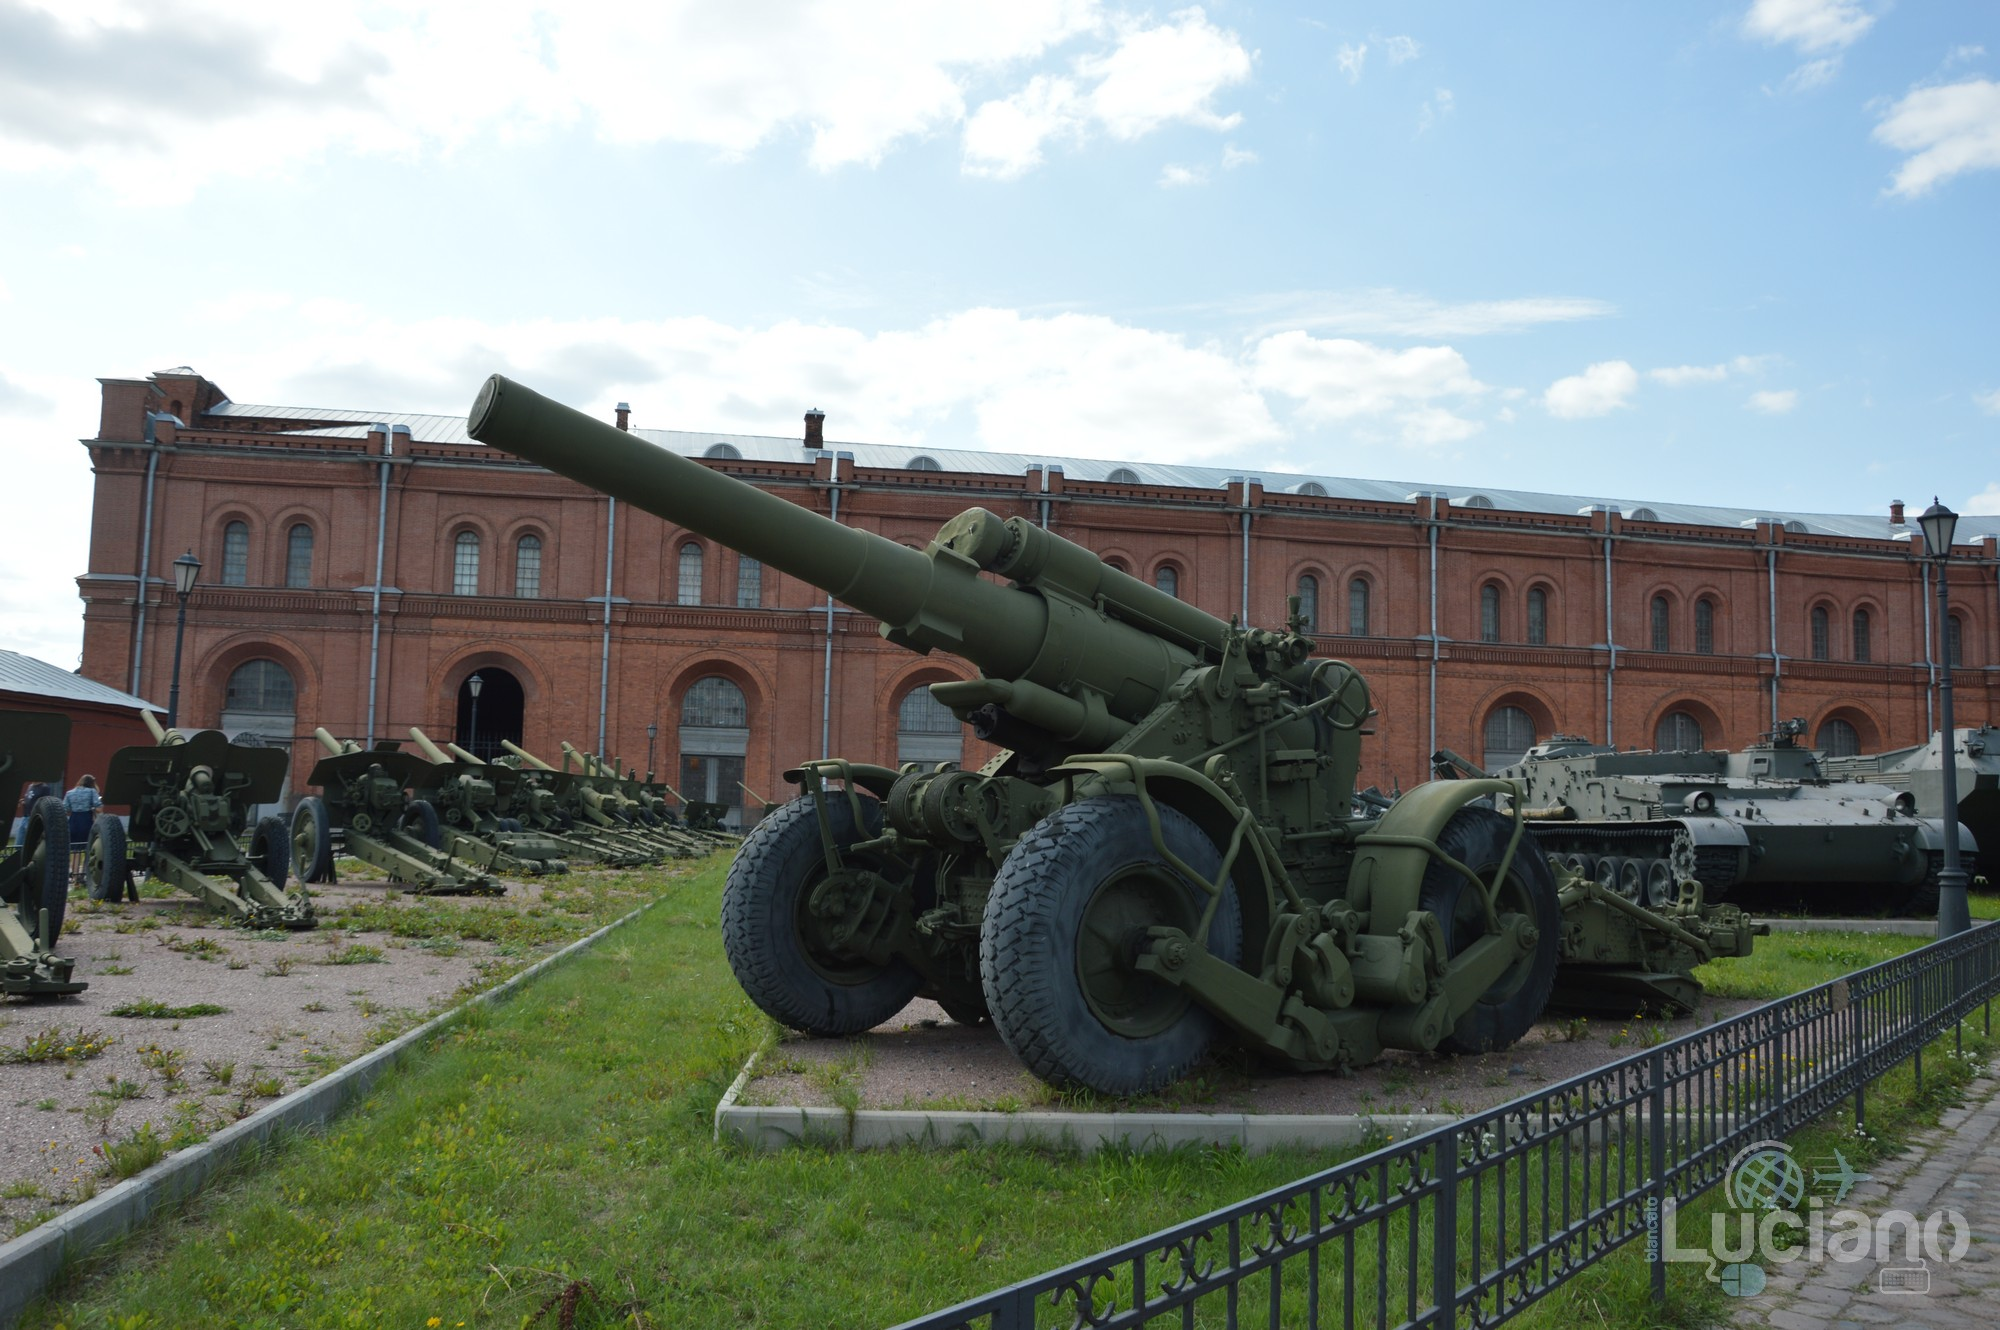 Military-Historical-Museum-of-Artillery-Engineer-and-Signal-Corps-St-Petersburg-Russia-Luciano-Blancato- (72)